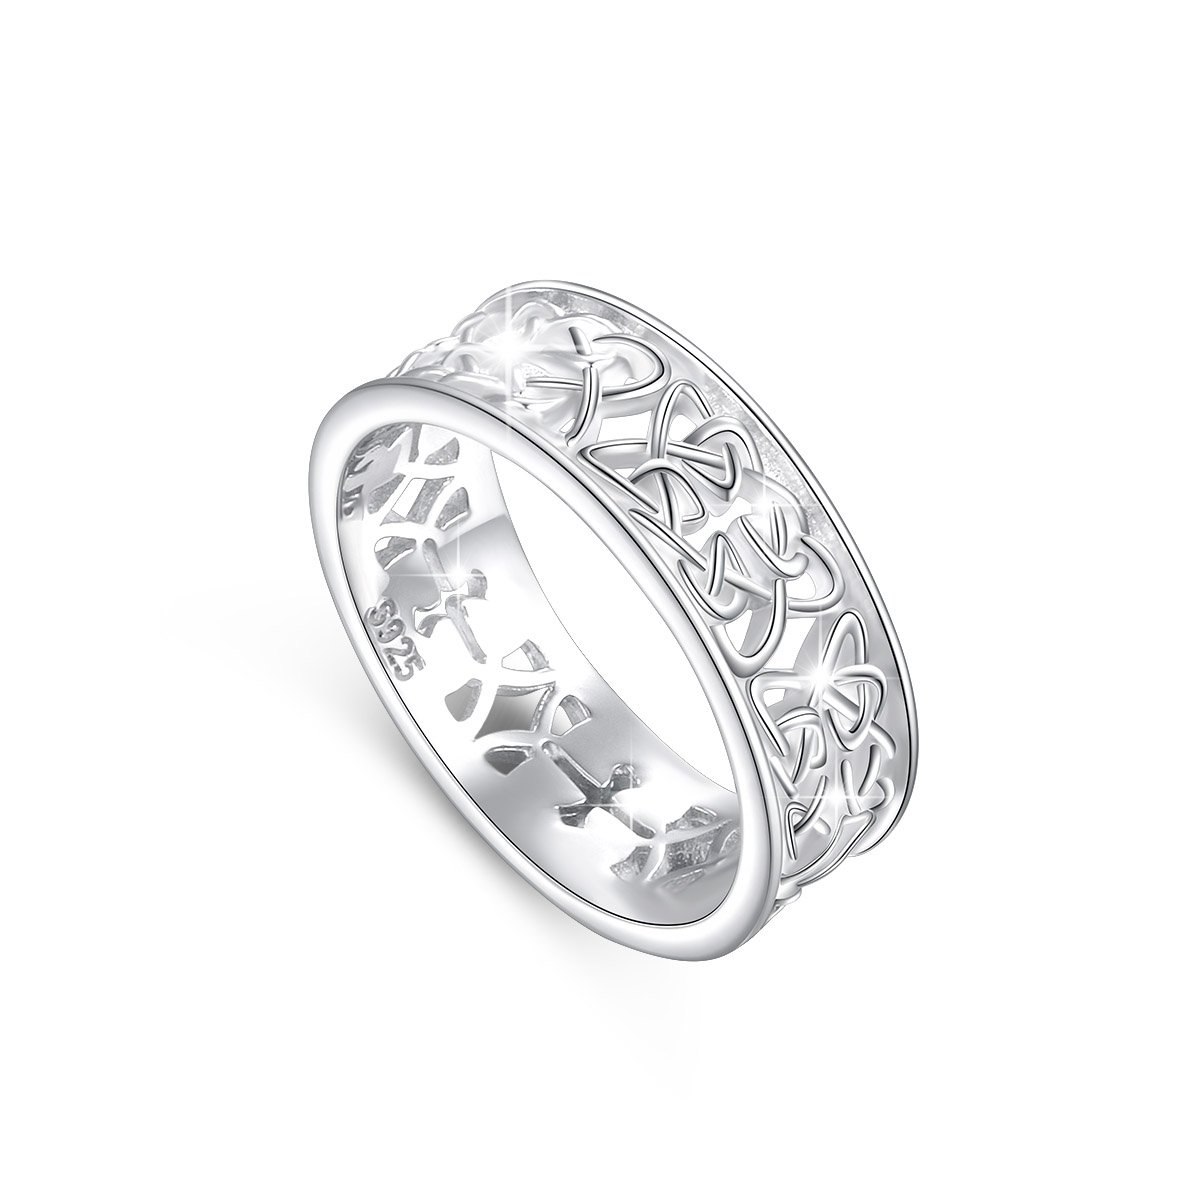 DAOCHONG Nickel-free 925 Sterling Silver Irish Love Trinity Woven Celtic Knot Band Ring for Women, Size 6 7 8 (8) by DAOCHONG (Image #1)